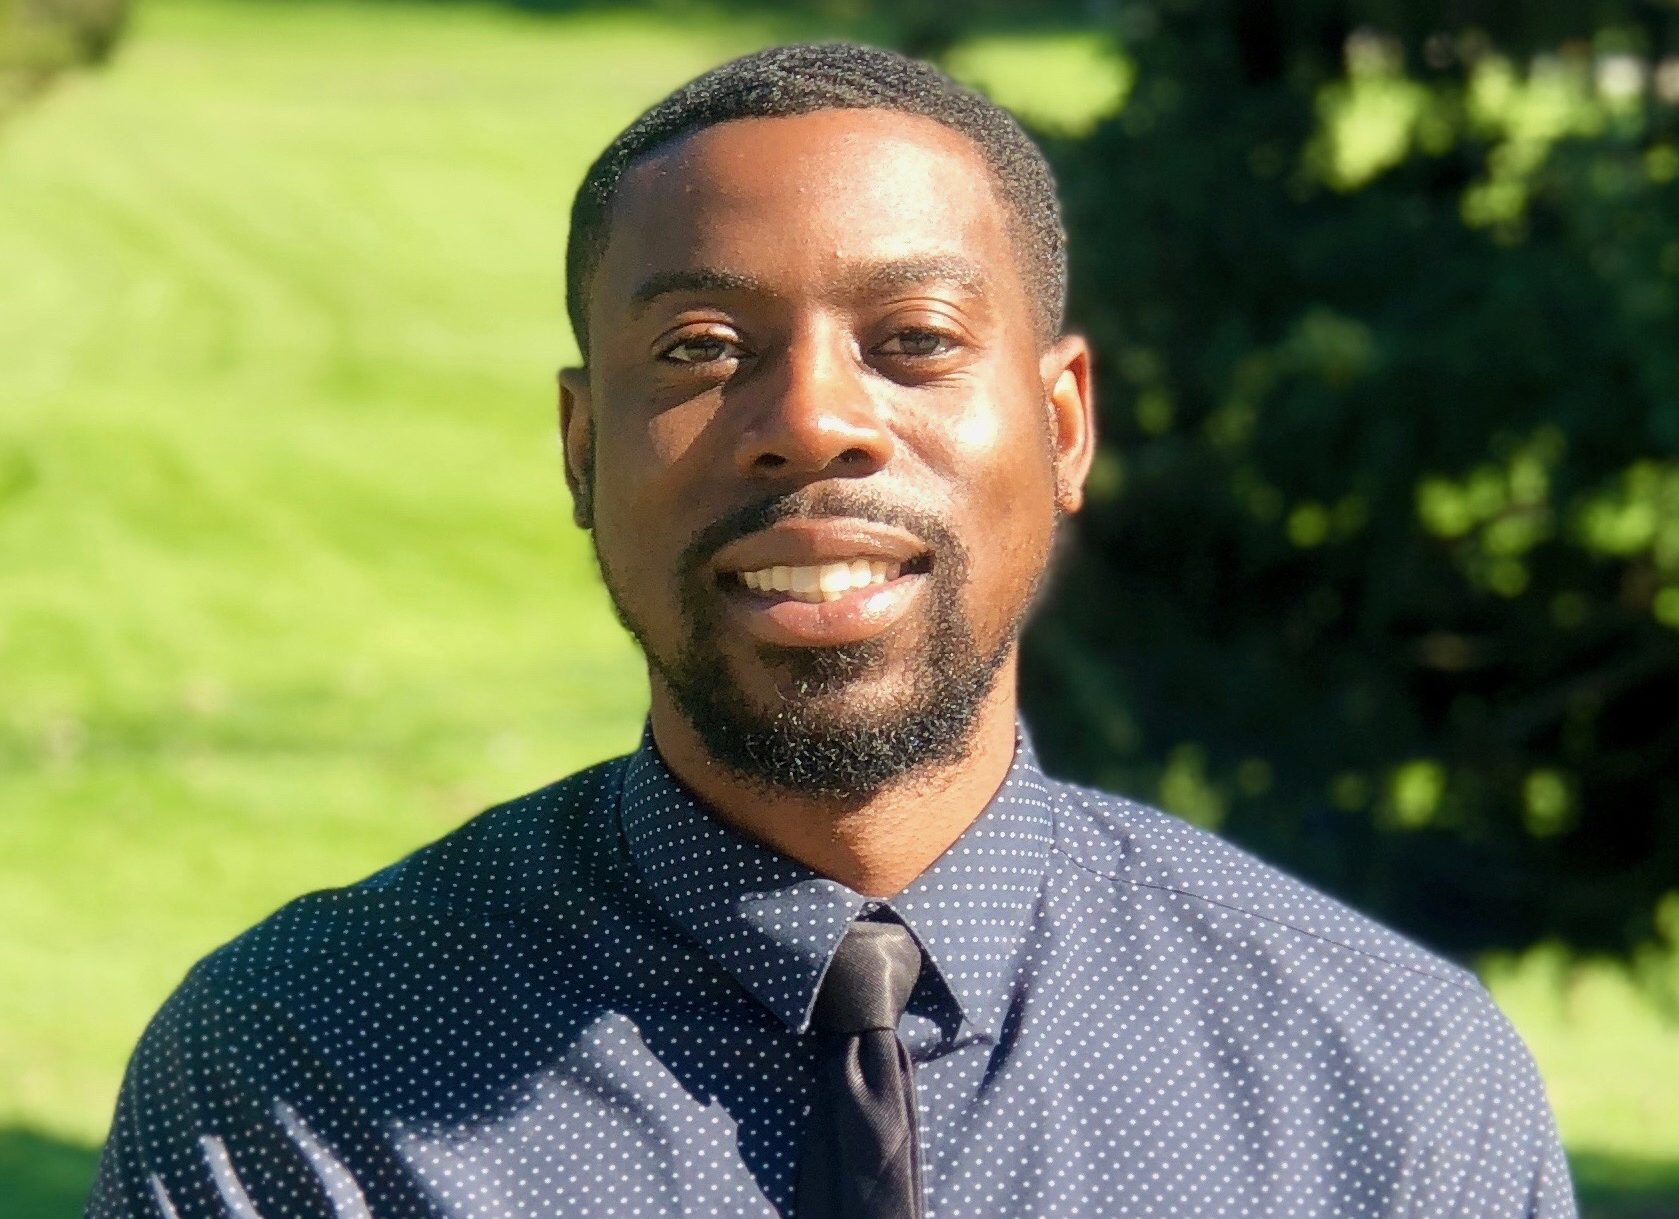 Dr. Lamar Johnson wearing a navy button up with gray dots and a black tie.